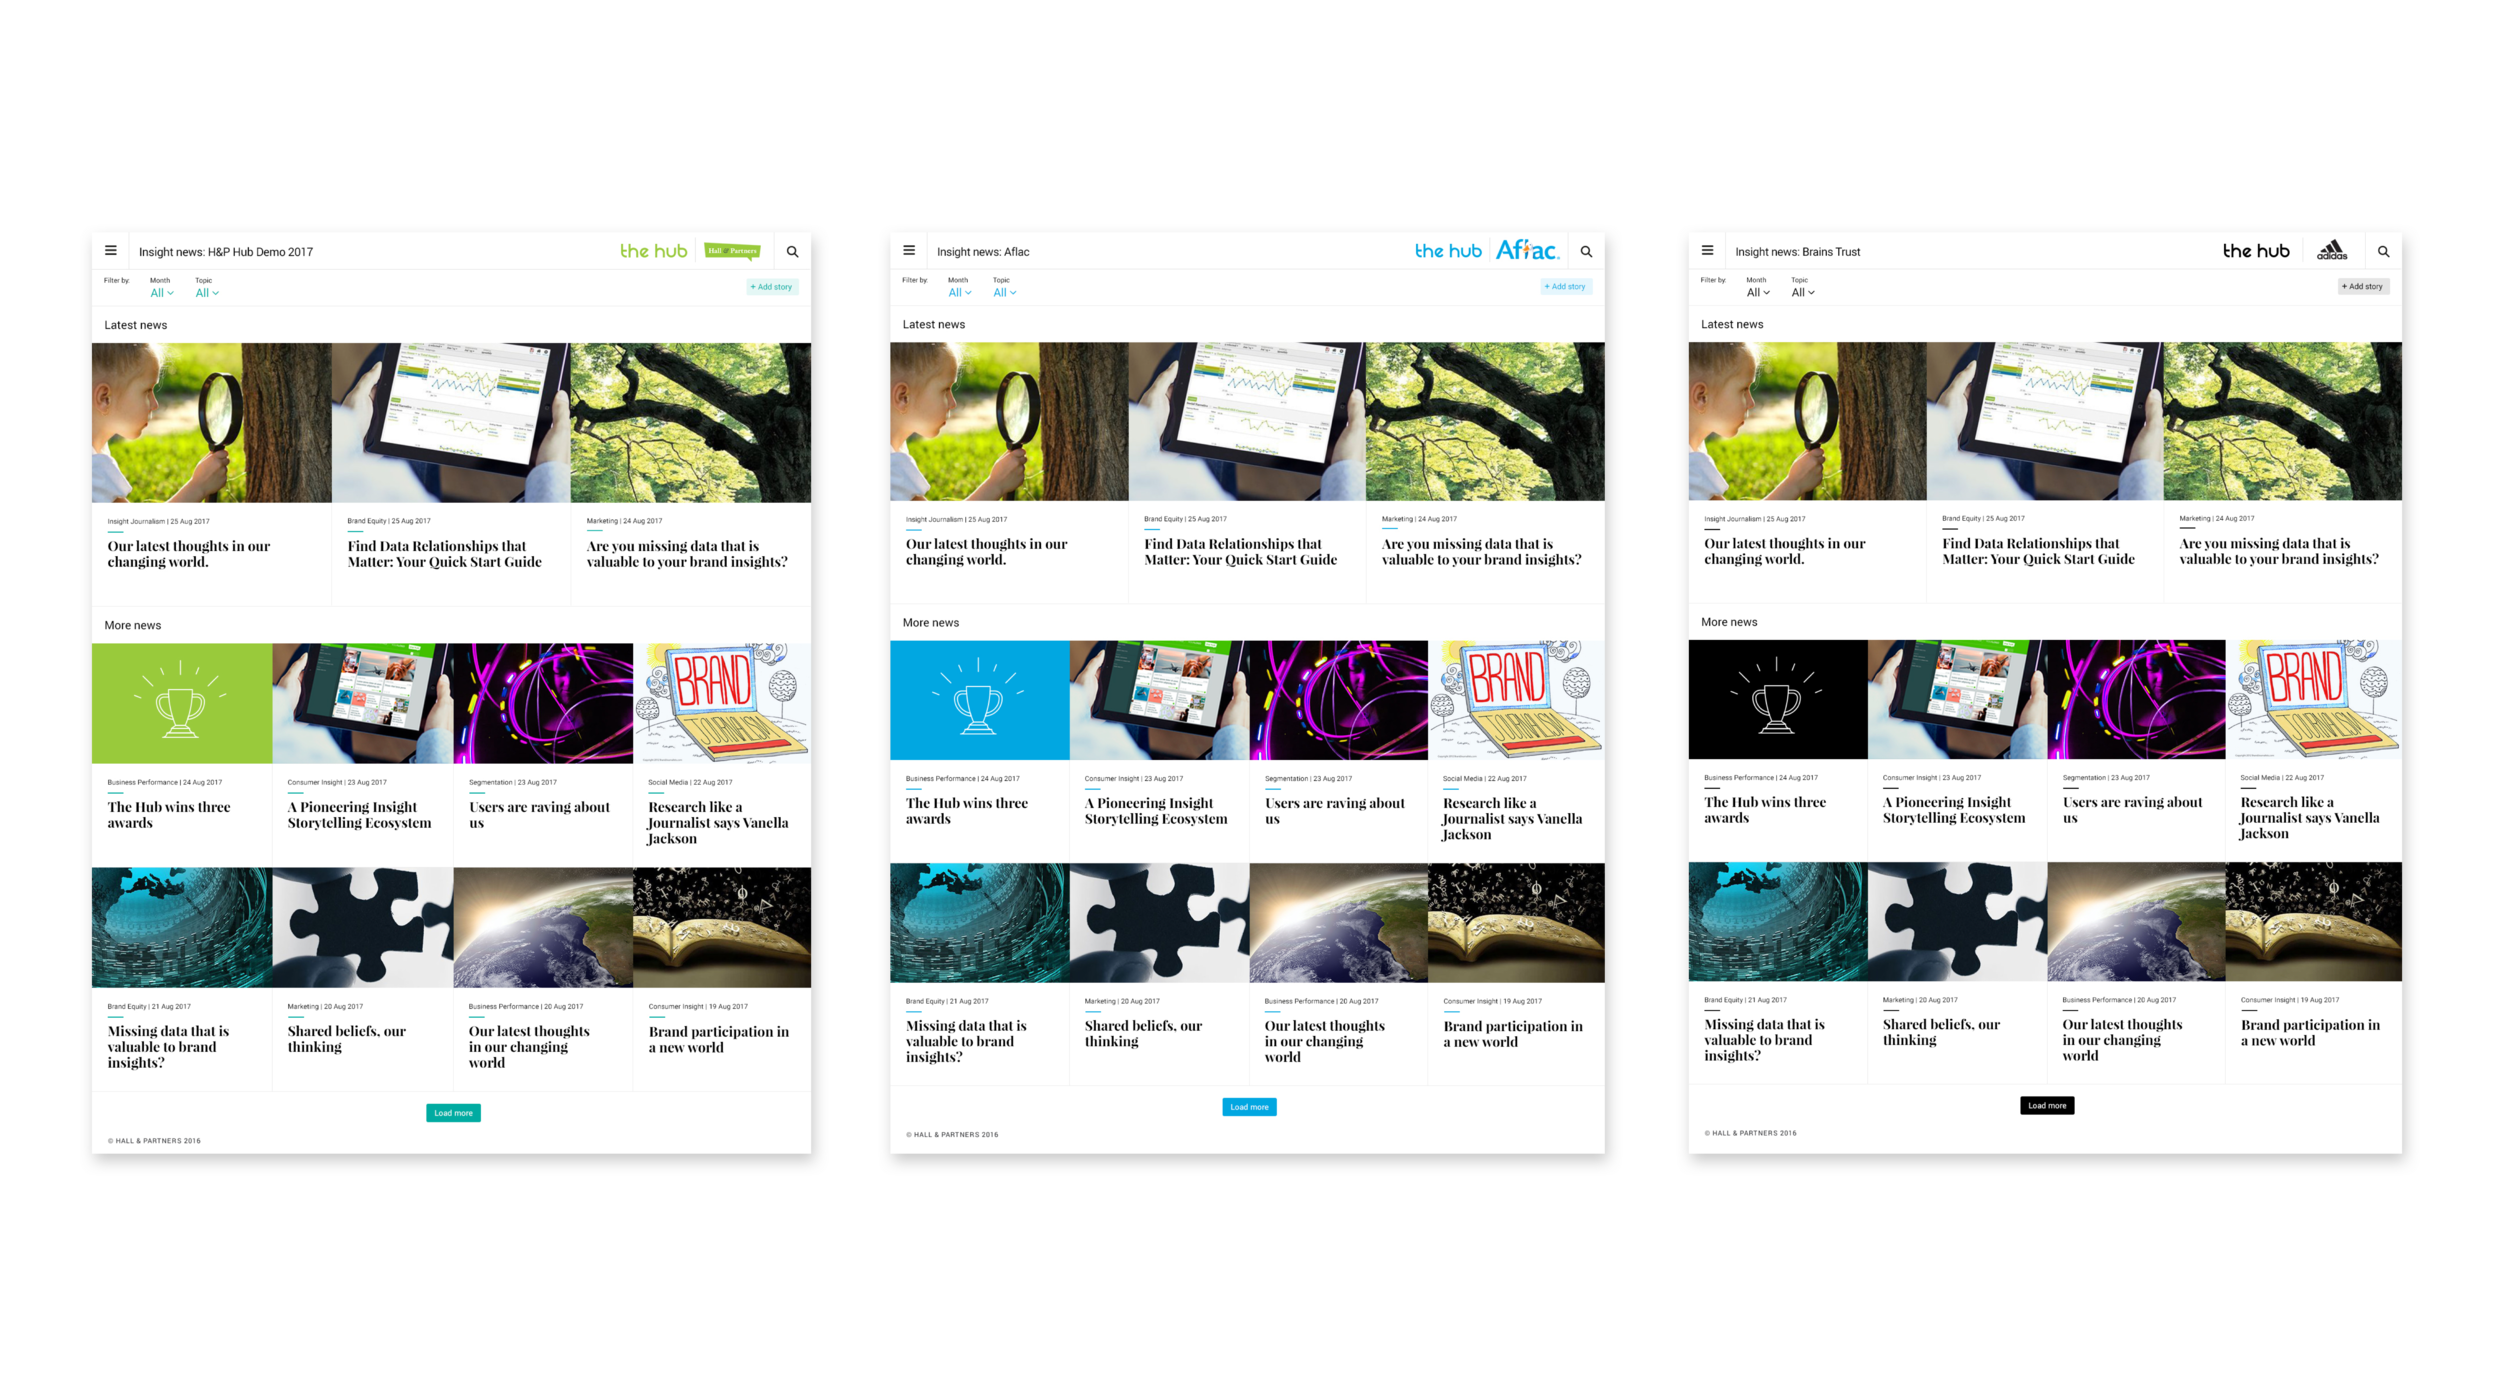 We created a branding system so the Hub could be tailored to all different brands need and visual identity. Above you can see how the Insights News Page looks for three different clients with our new visual design.